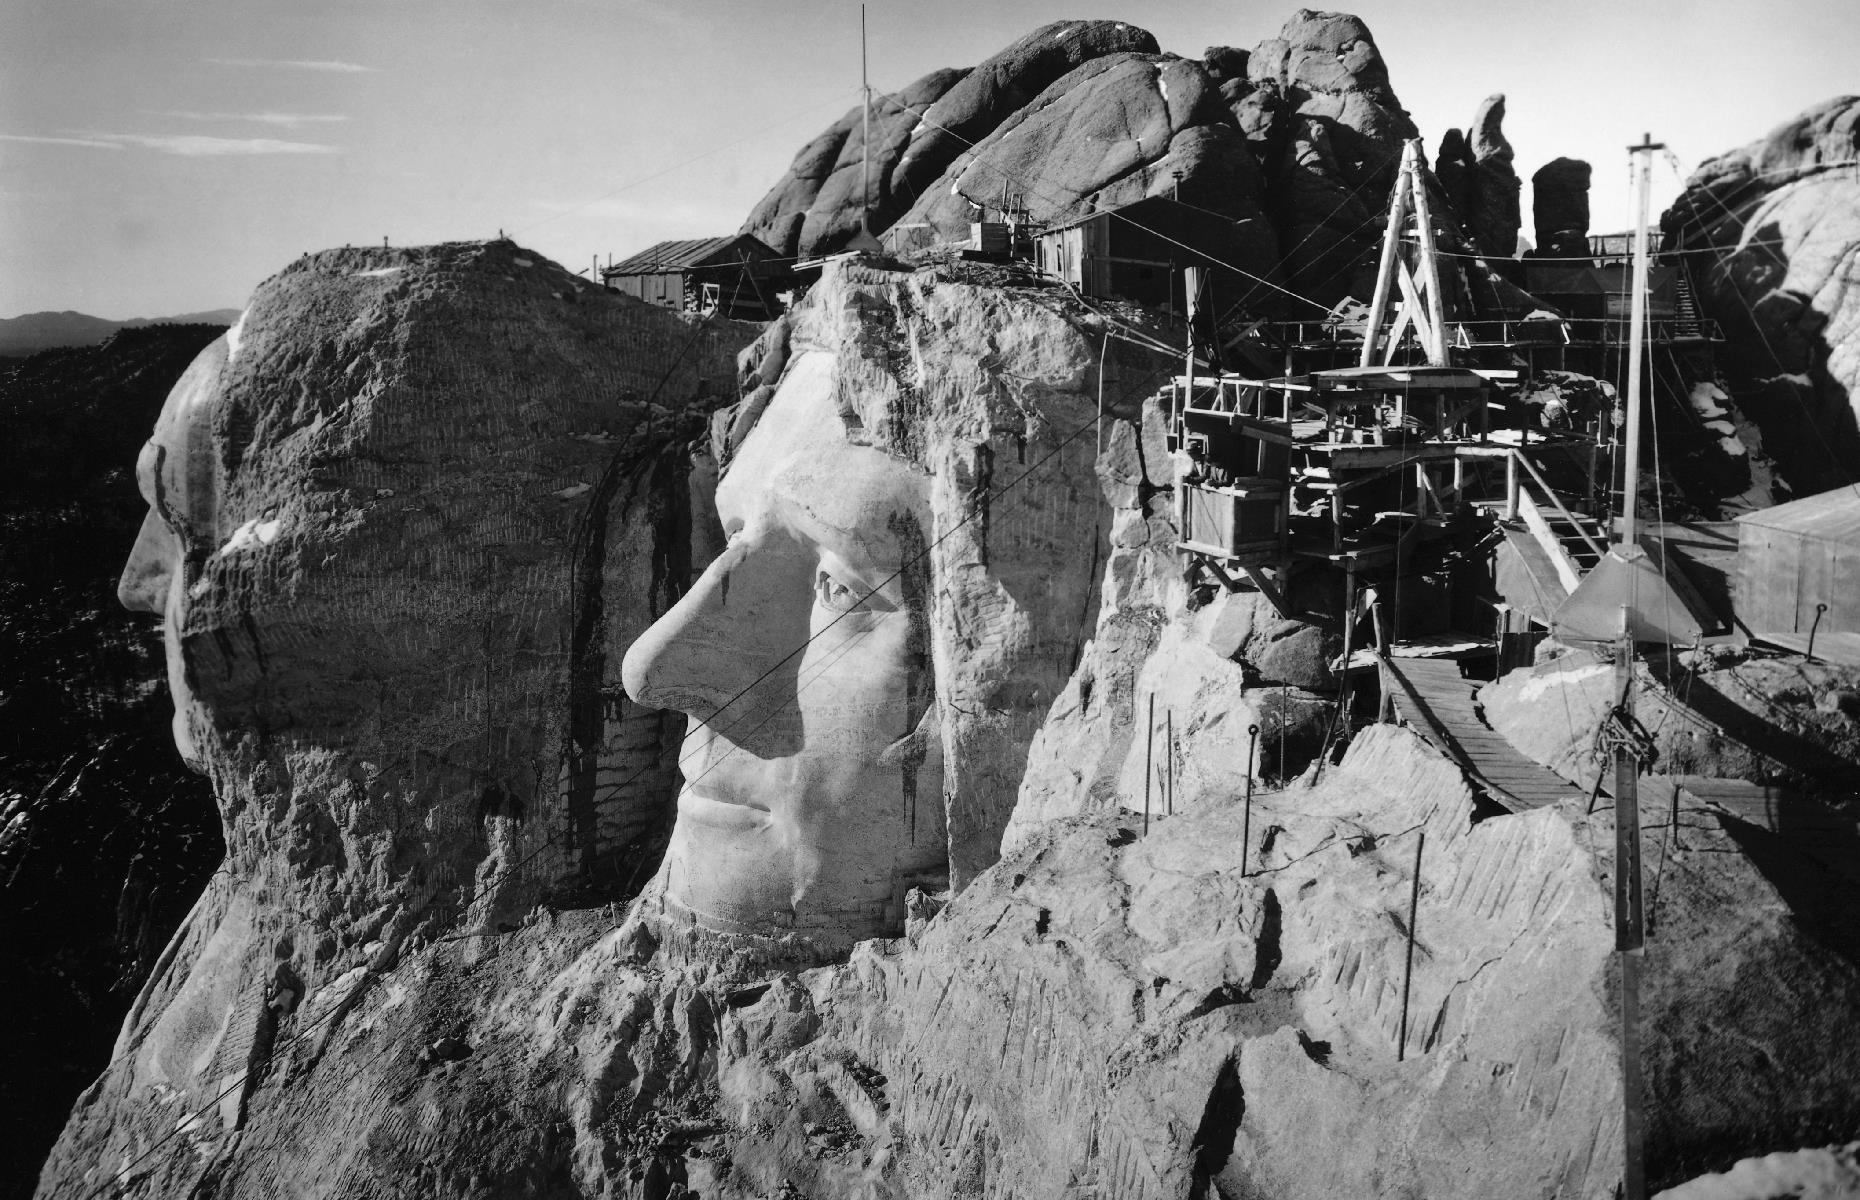 Slide 42 of 47: The huge granite faces – each around 60-feet (18m) tall – would take more than a decade to realize. This photo is thought to have been captured circa 1940, a year before the great feat was finished. It shows the bold profile of Thomas Jefferson and the outline of George Washington in the farther distance, as seen from the top of Abraham Lincoln's head.Find morefascinating facts about America's tourist attractions here.